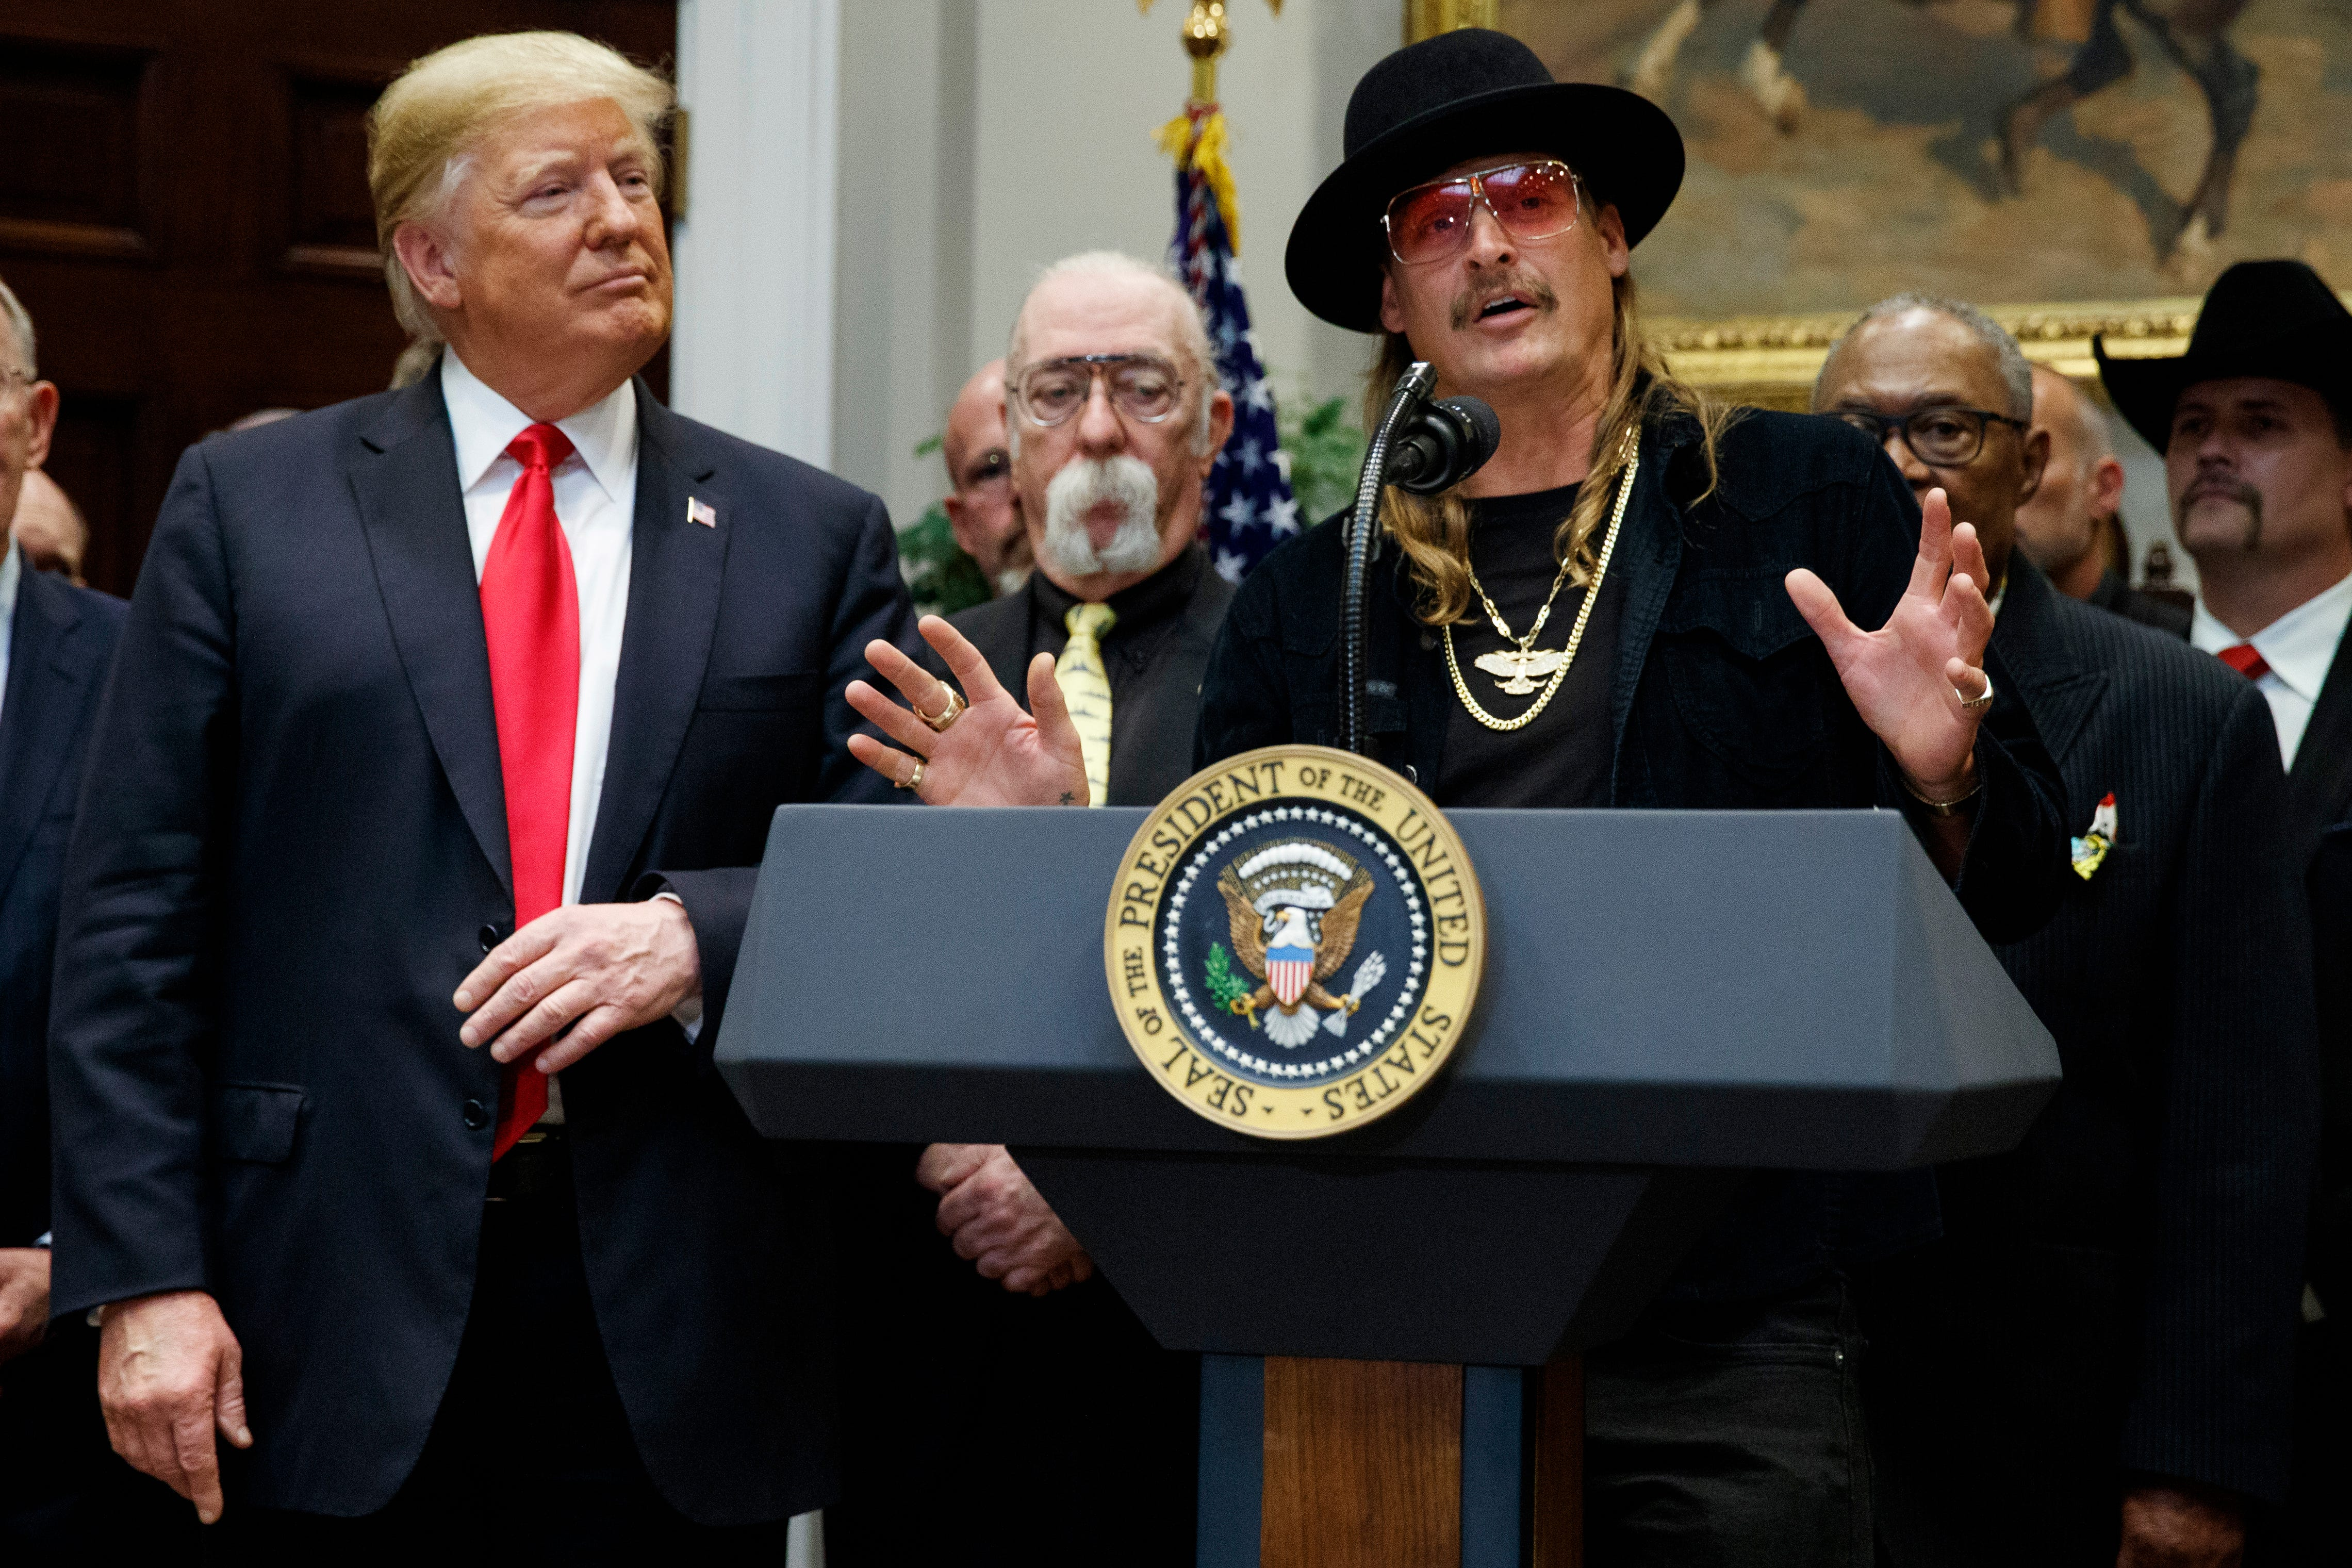 Trump golfs with Kid Rock in Florida, one day after Mueller finishes Russia probe